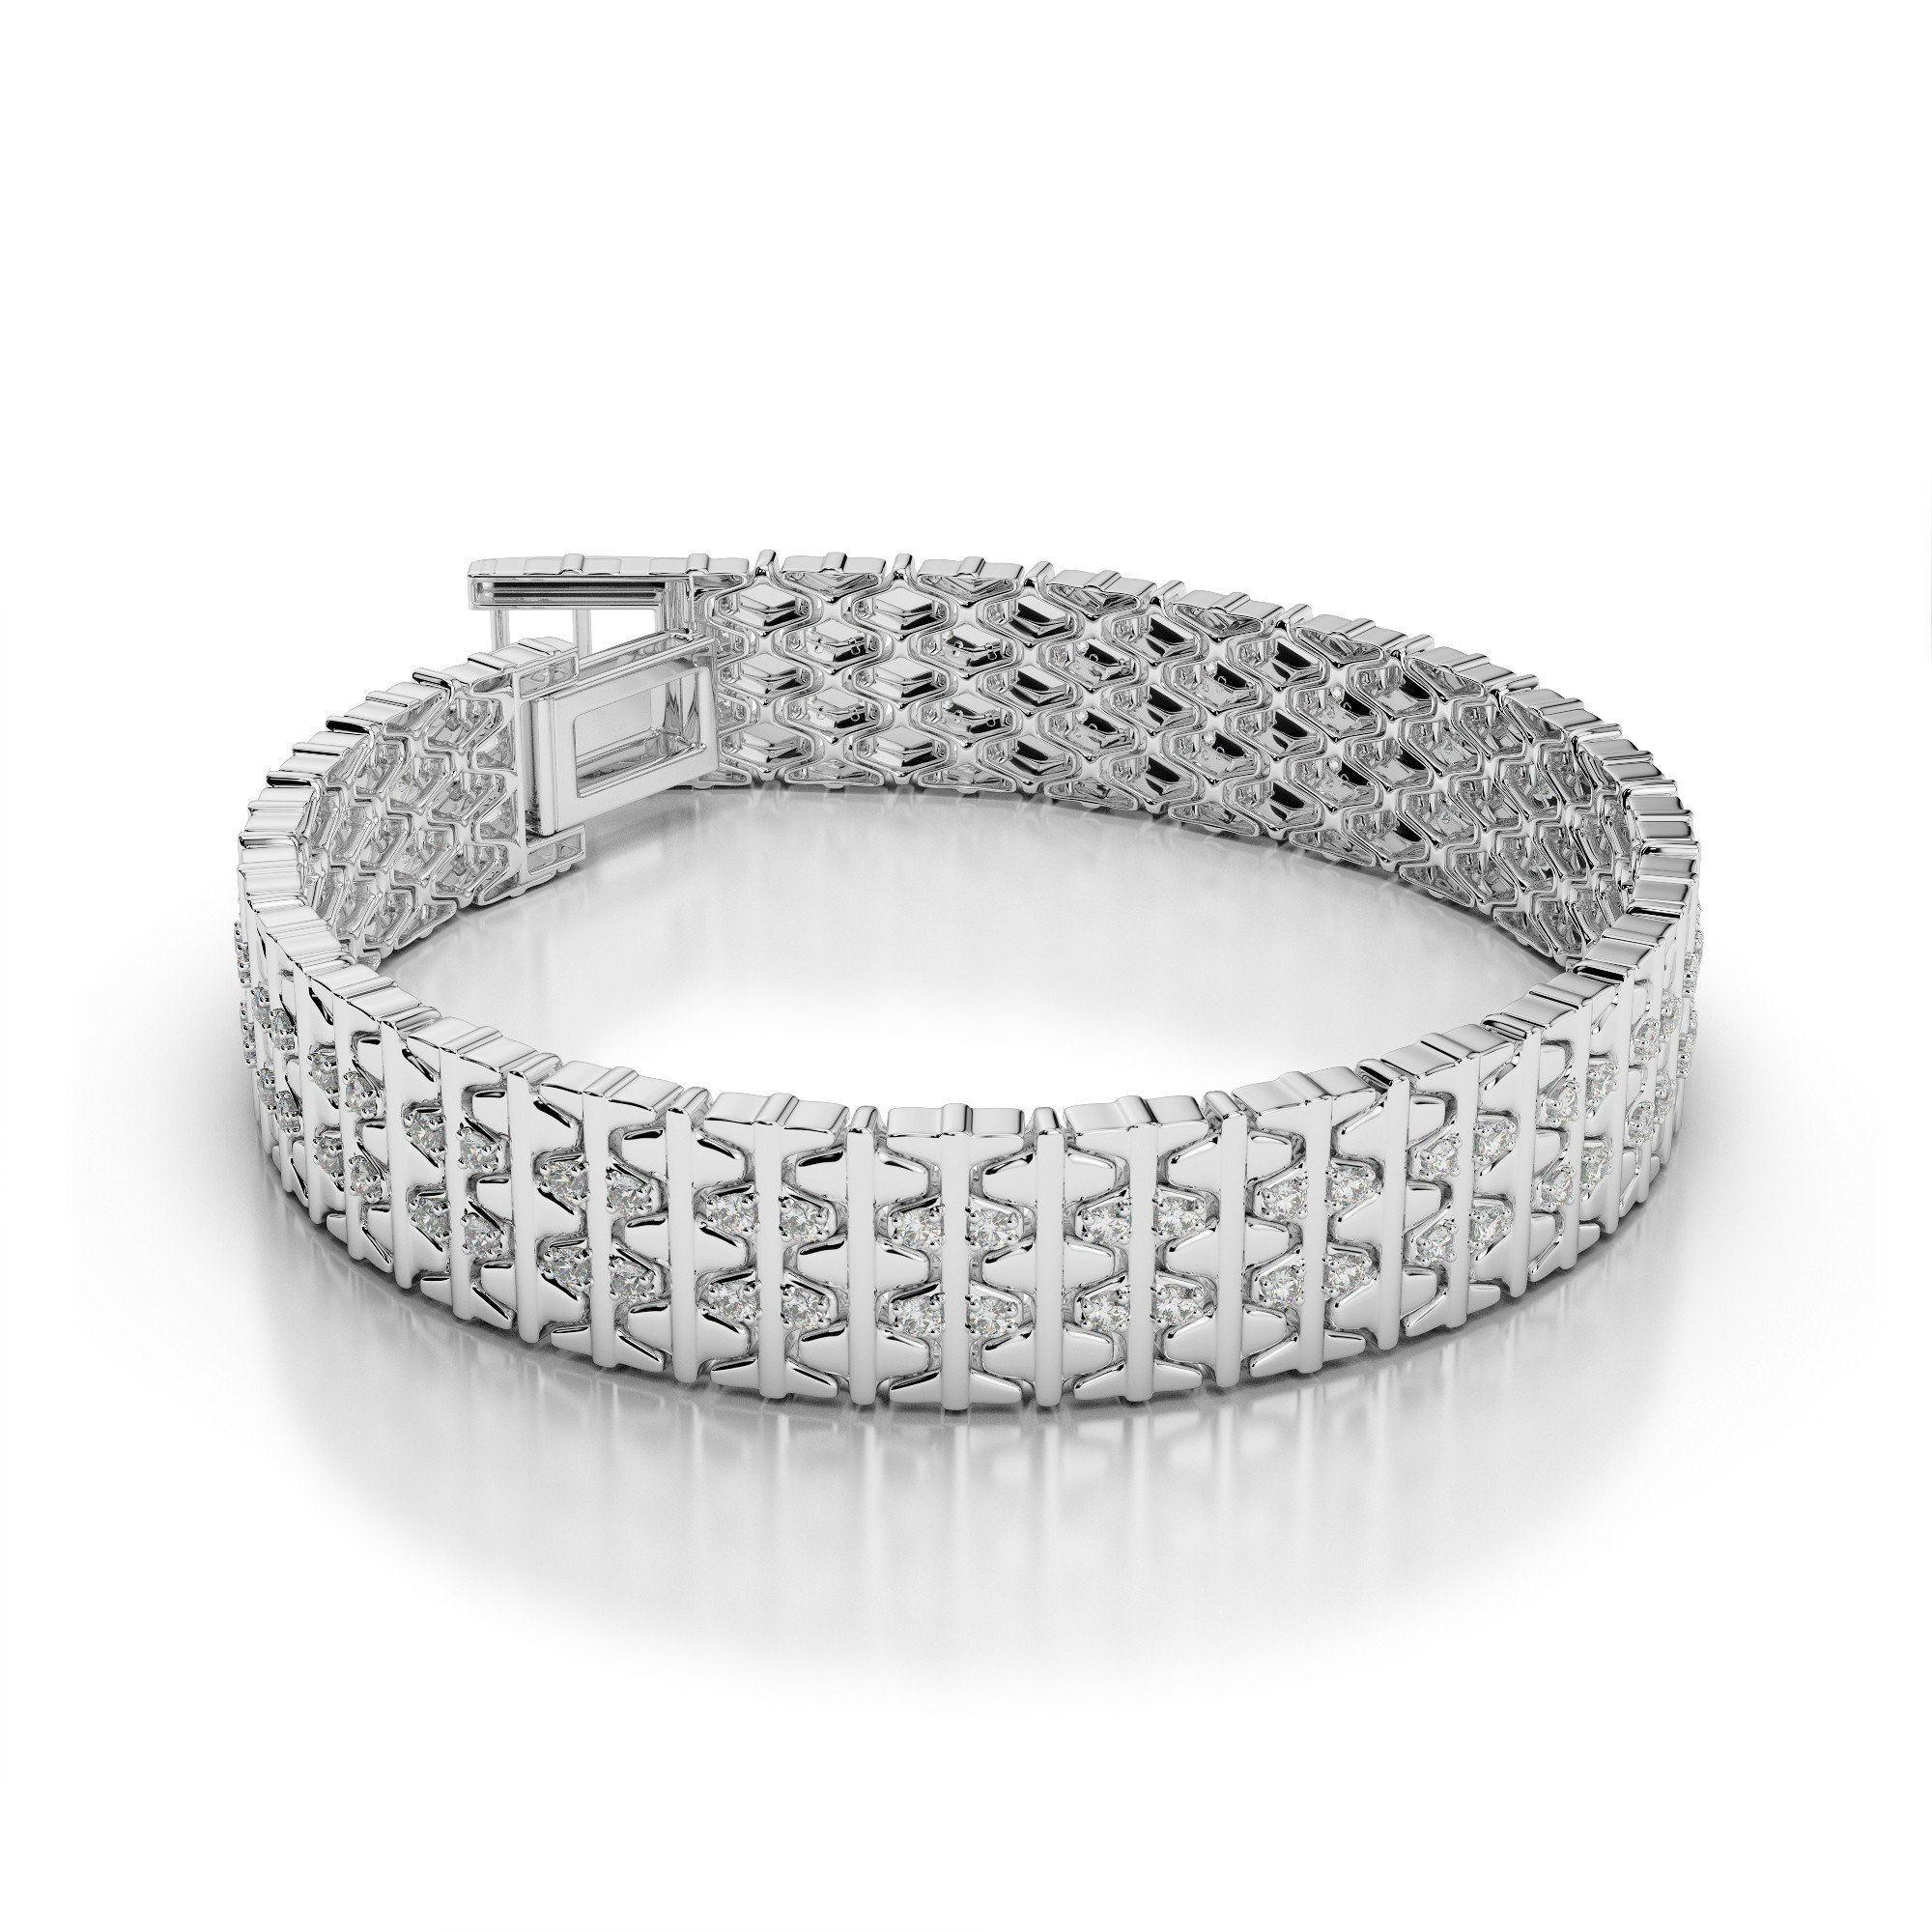 3.00 Carat Diamond Men's Bracelet